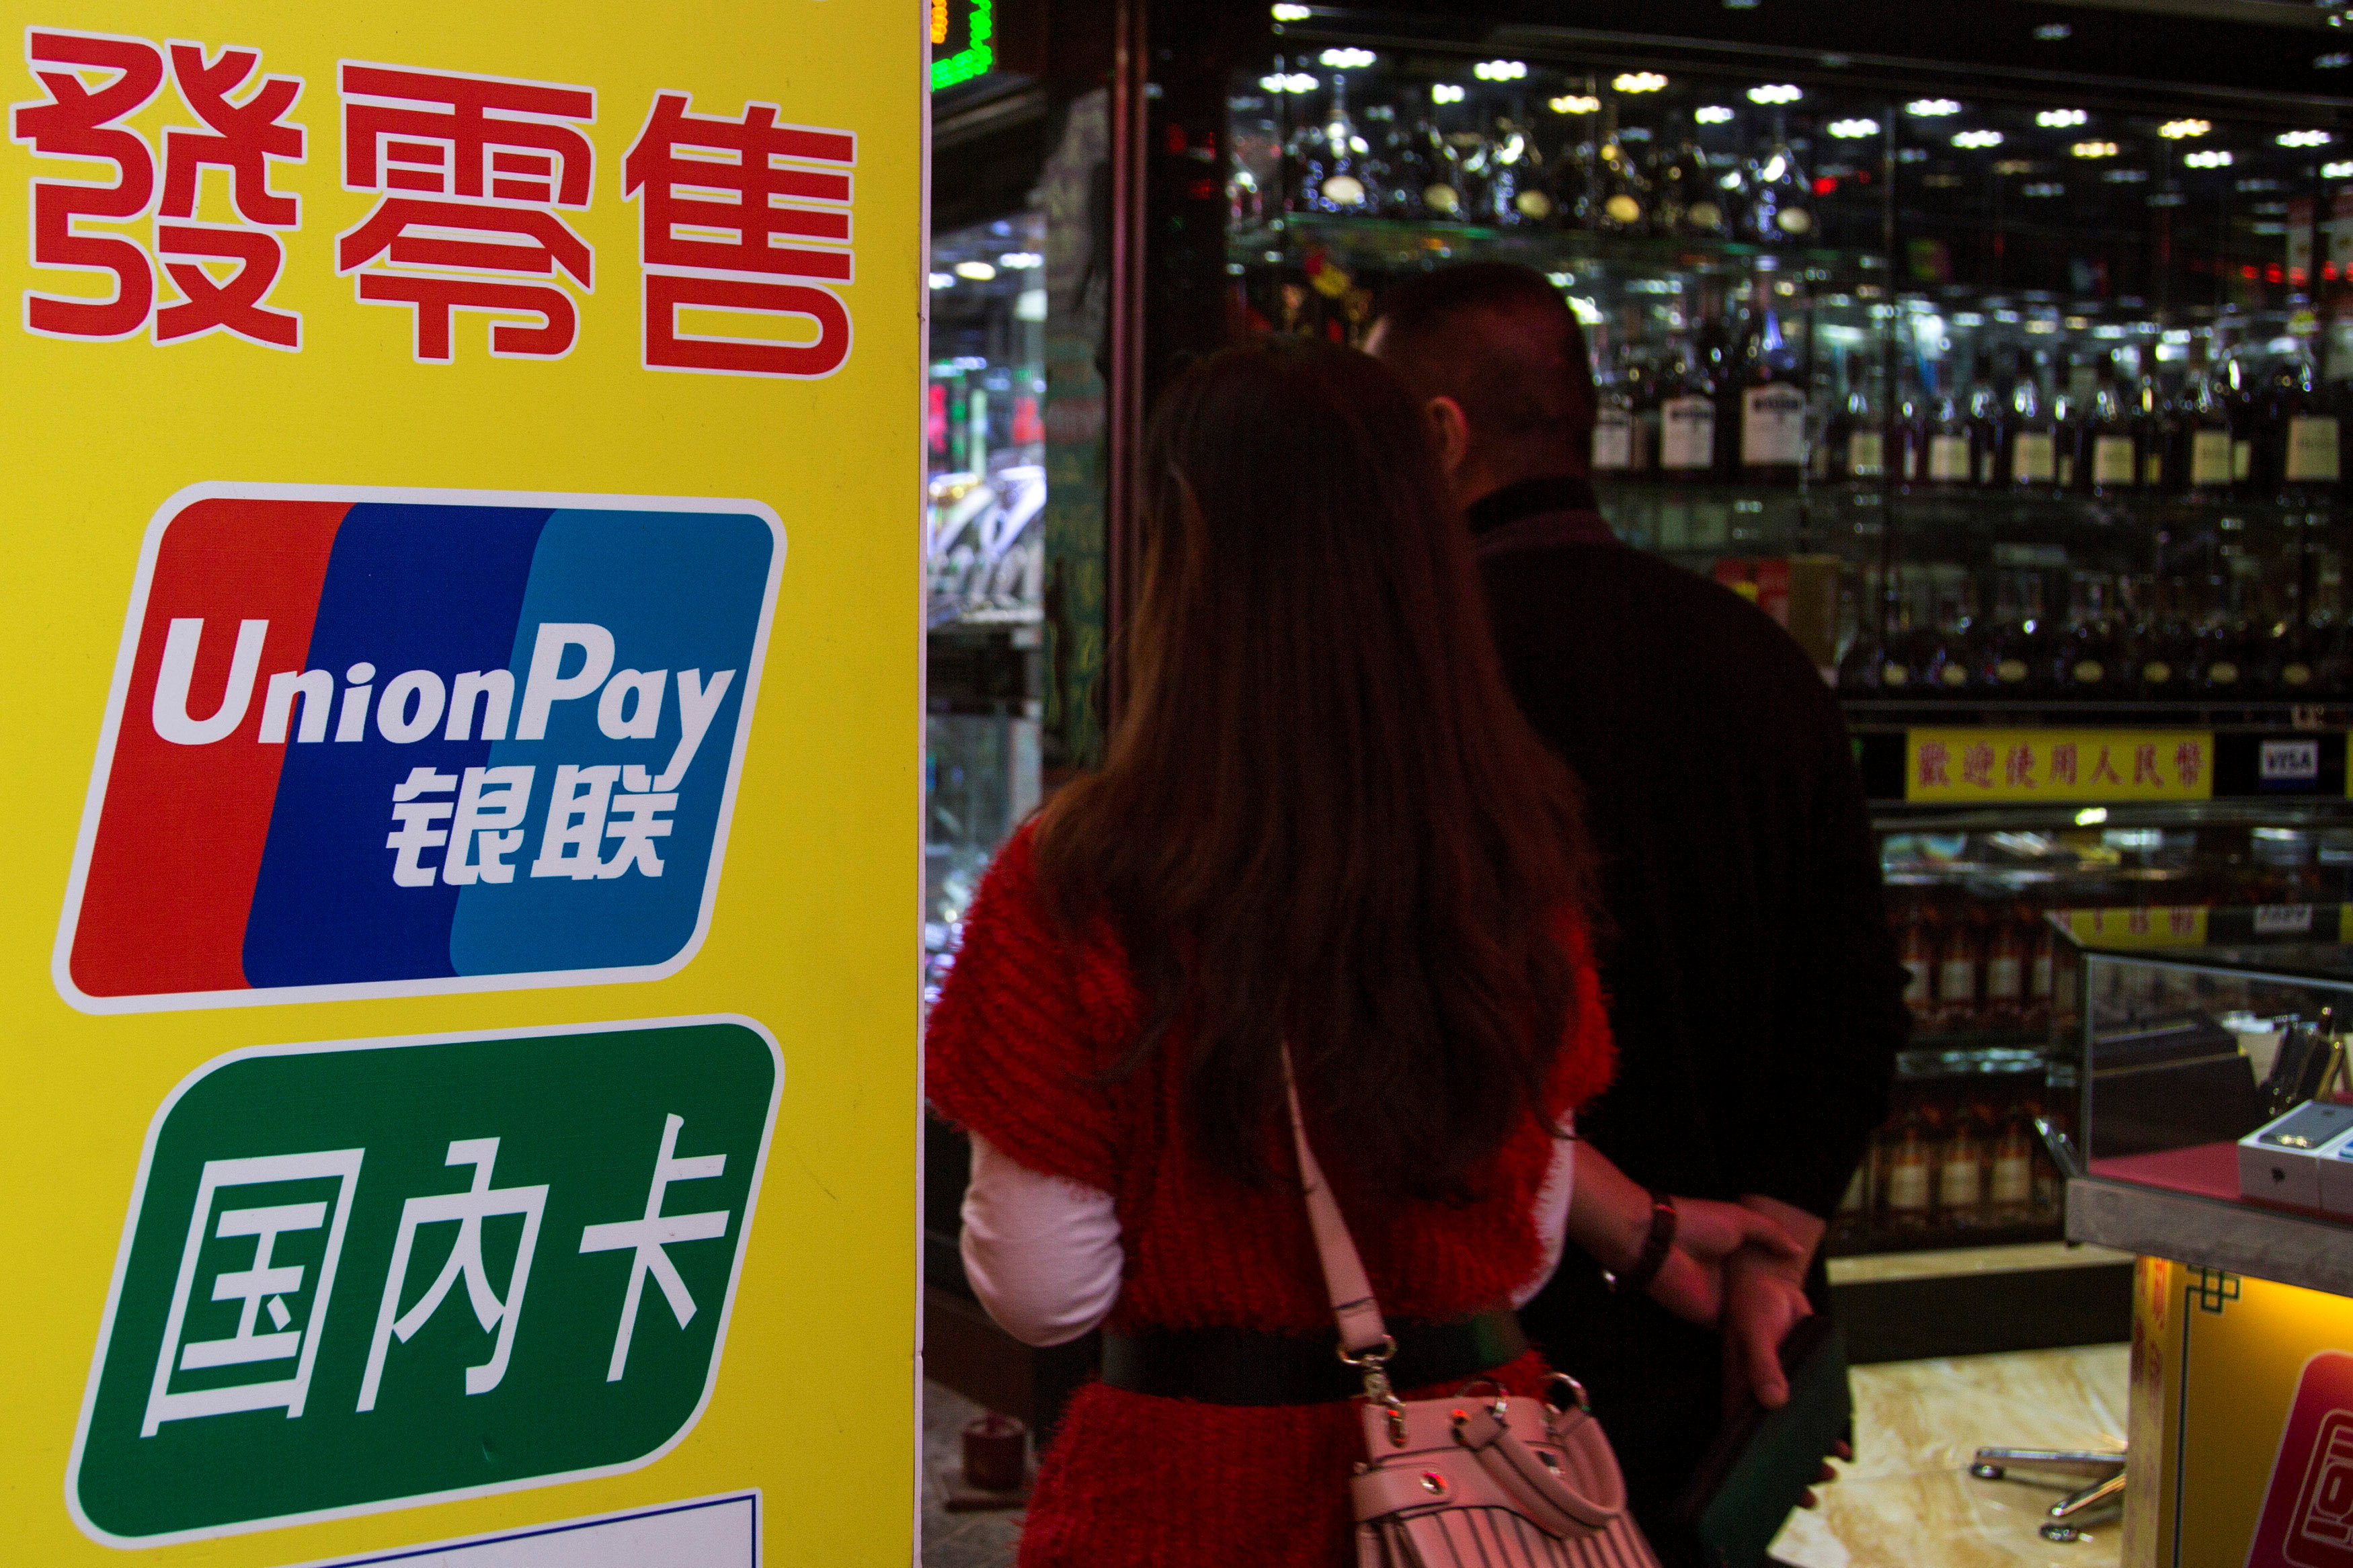 FILE PHOTO - Chinese visitors walk past a sign for China UnionPay outside a pawnshop in Macau